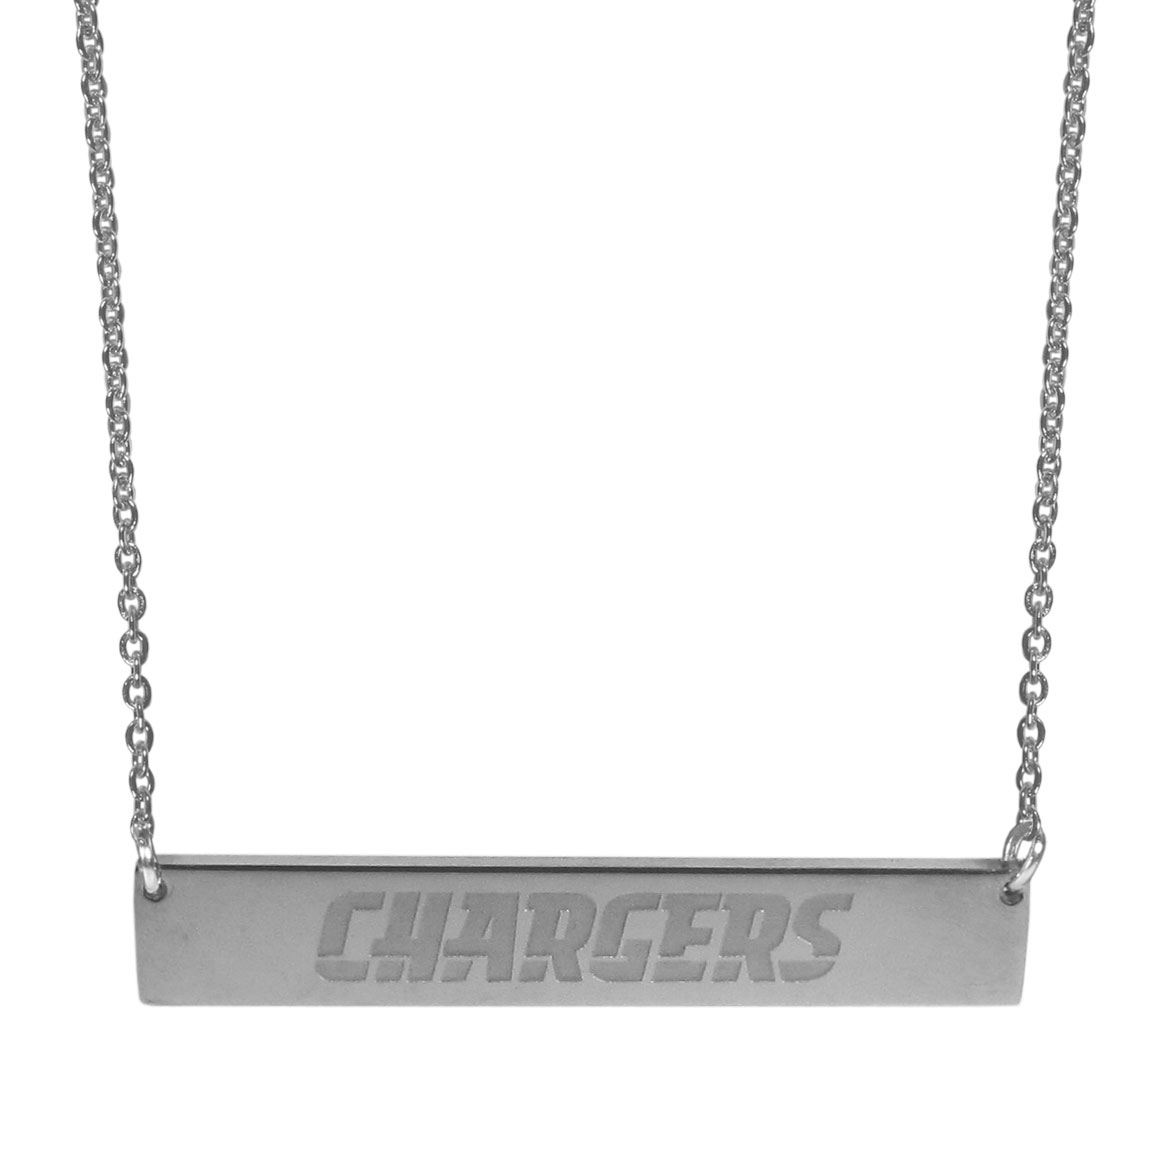 Los Angeles Chargers Bar Necklace - Simply beautiful Los Angeles Chargers bar necklace on a 20 inch link chain with 2 inch adjustable extender. This light-weight bar necklace has a stylish silver colored finish with the team name expertly etched on the 1.5 inch bar. Every female  fan will enjoy this contempory fashion accessory.